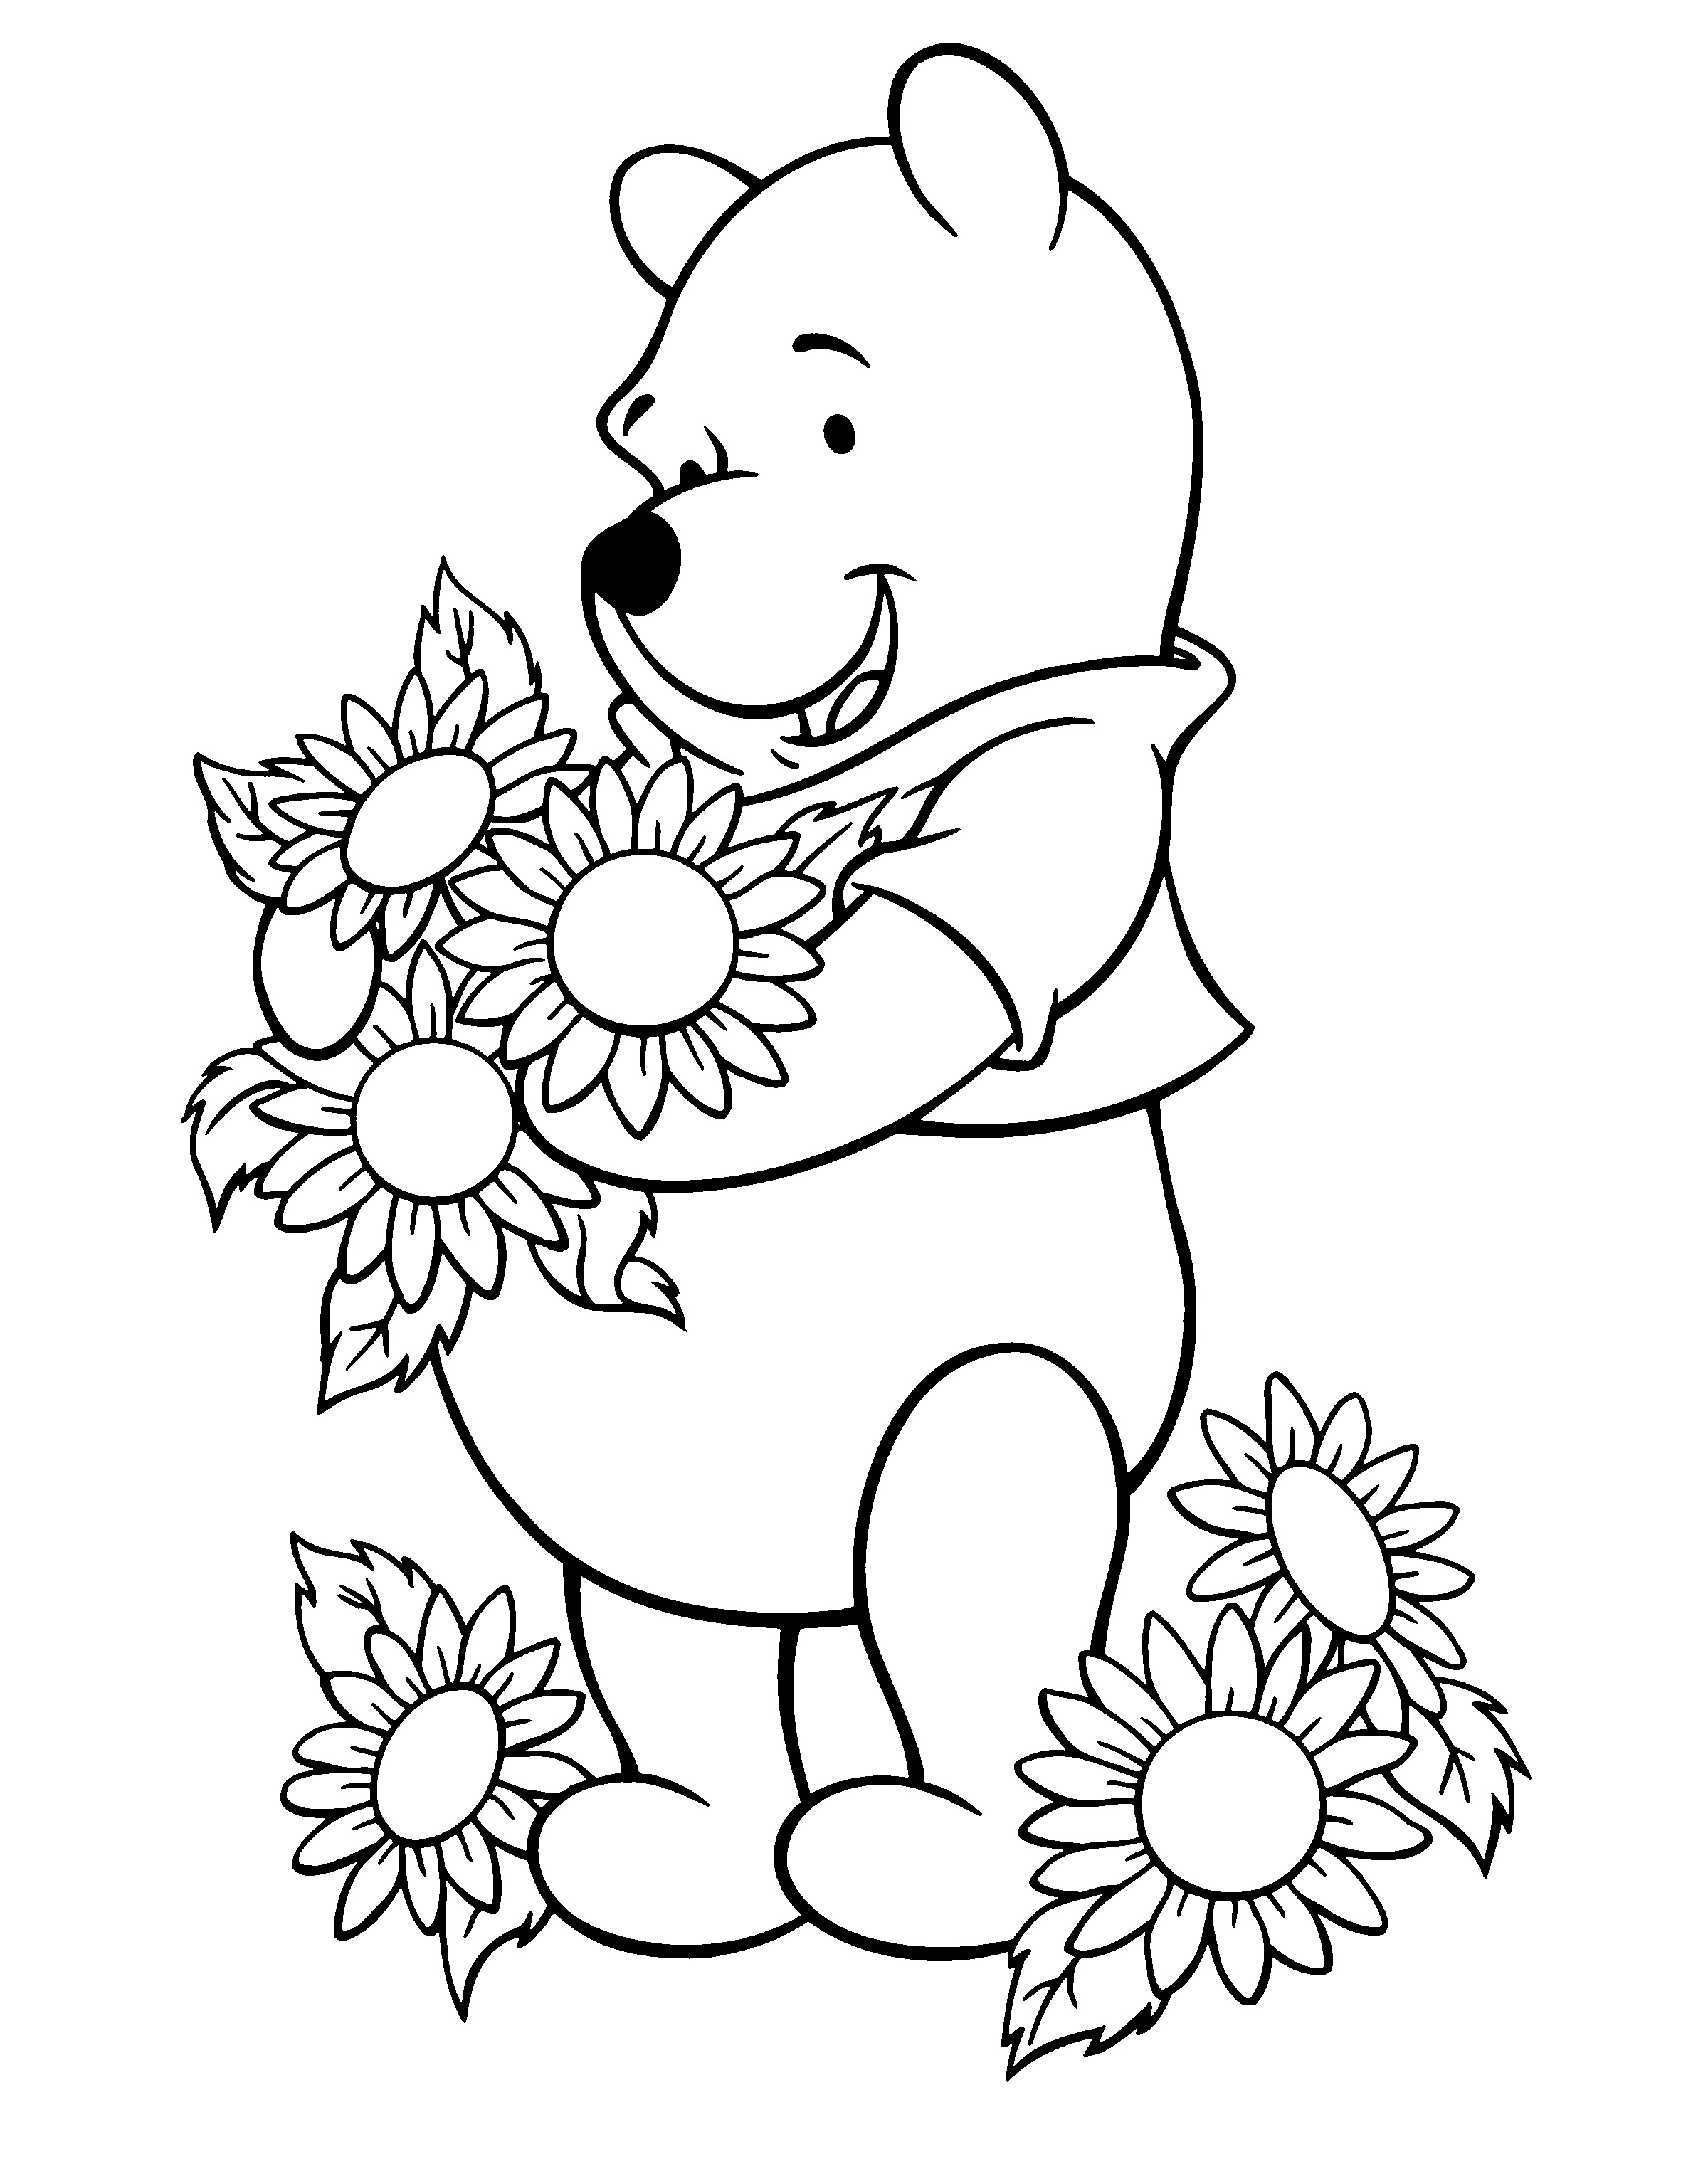 coloring pictures of sunflowers top 20 printable sunflowers coloring pages online of coloring sunflowers pictures